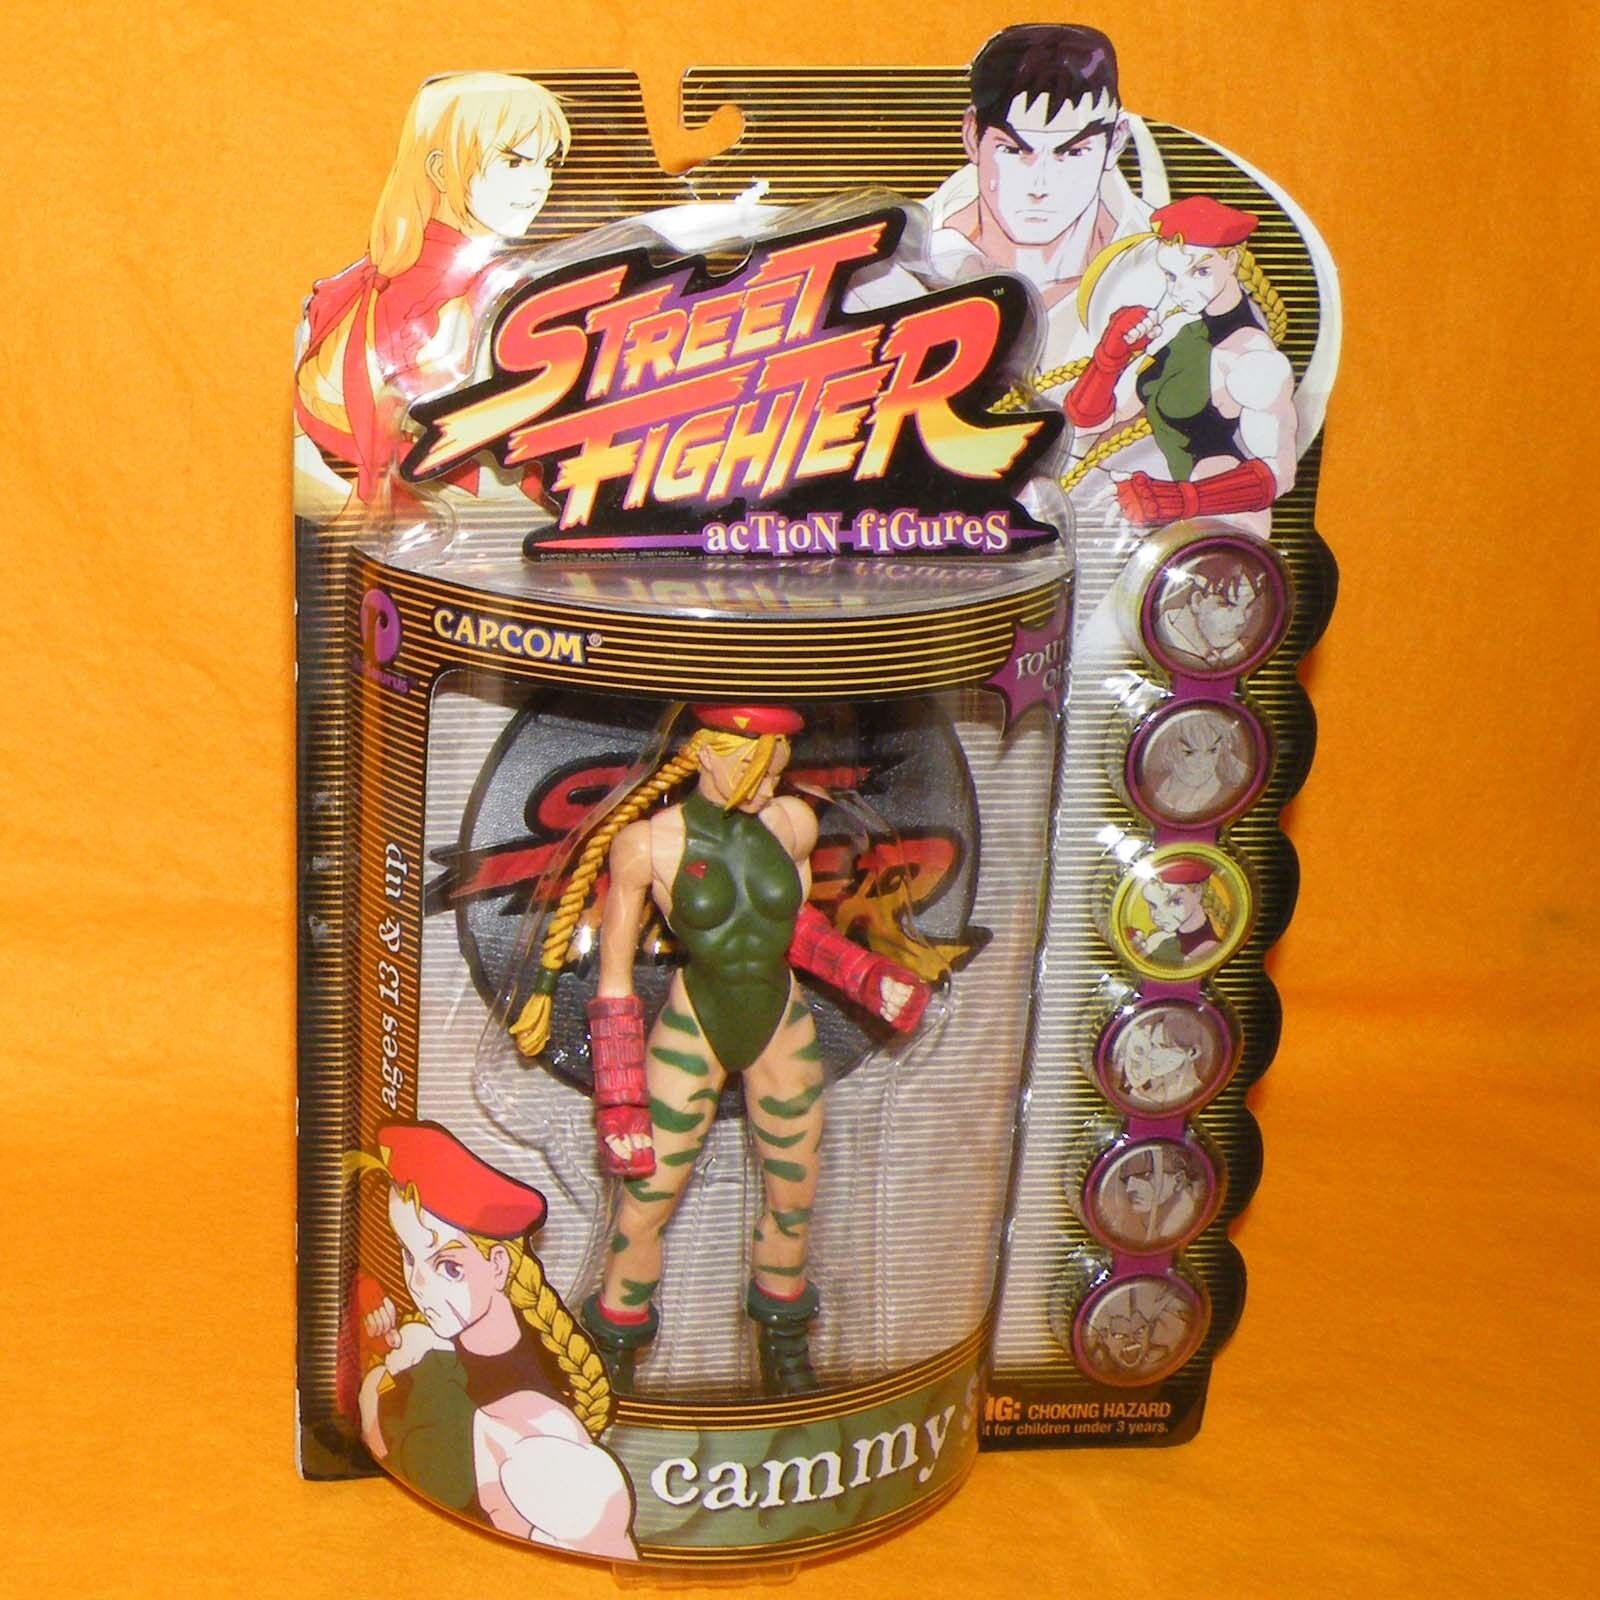 1999 1999 1999 RESAURUS CAPCOM STREET FIGHTER ROUND ONE CAMMY FIGURE MOC CARDED PLAYER 1 6cdf09